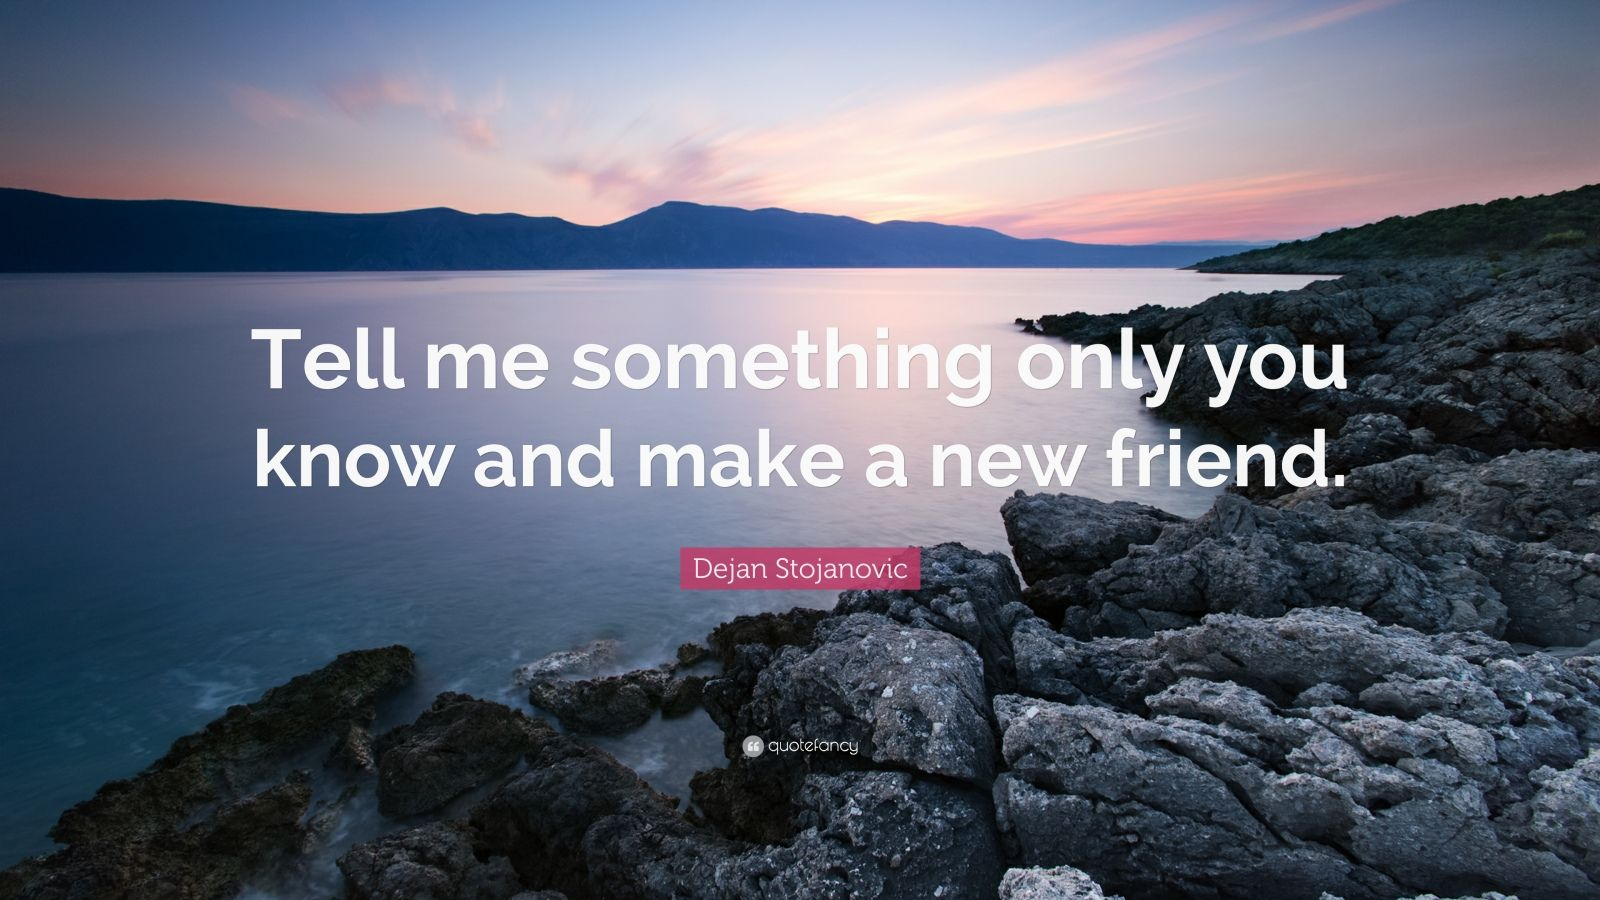 Tell me something only you know and make a new friend.